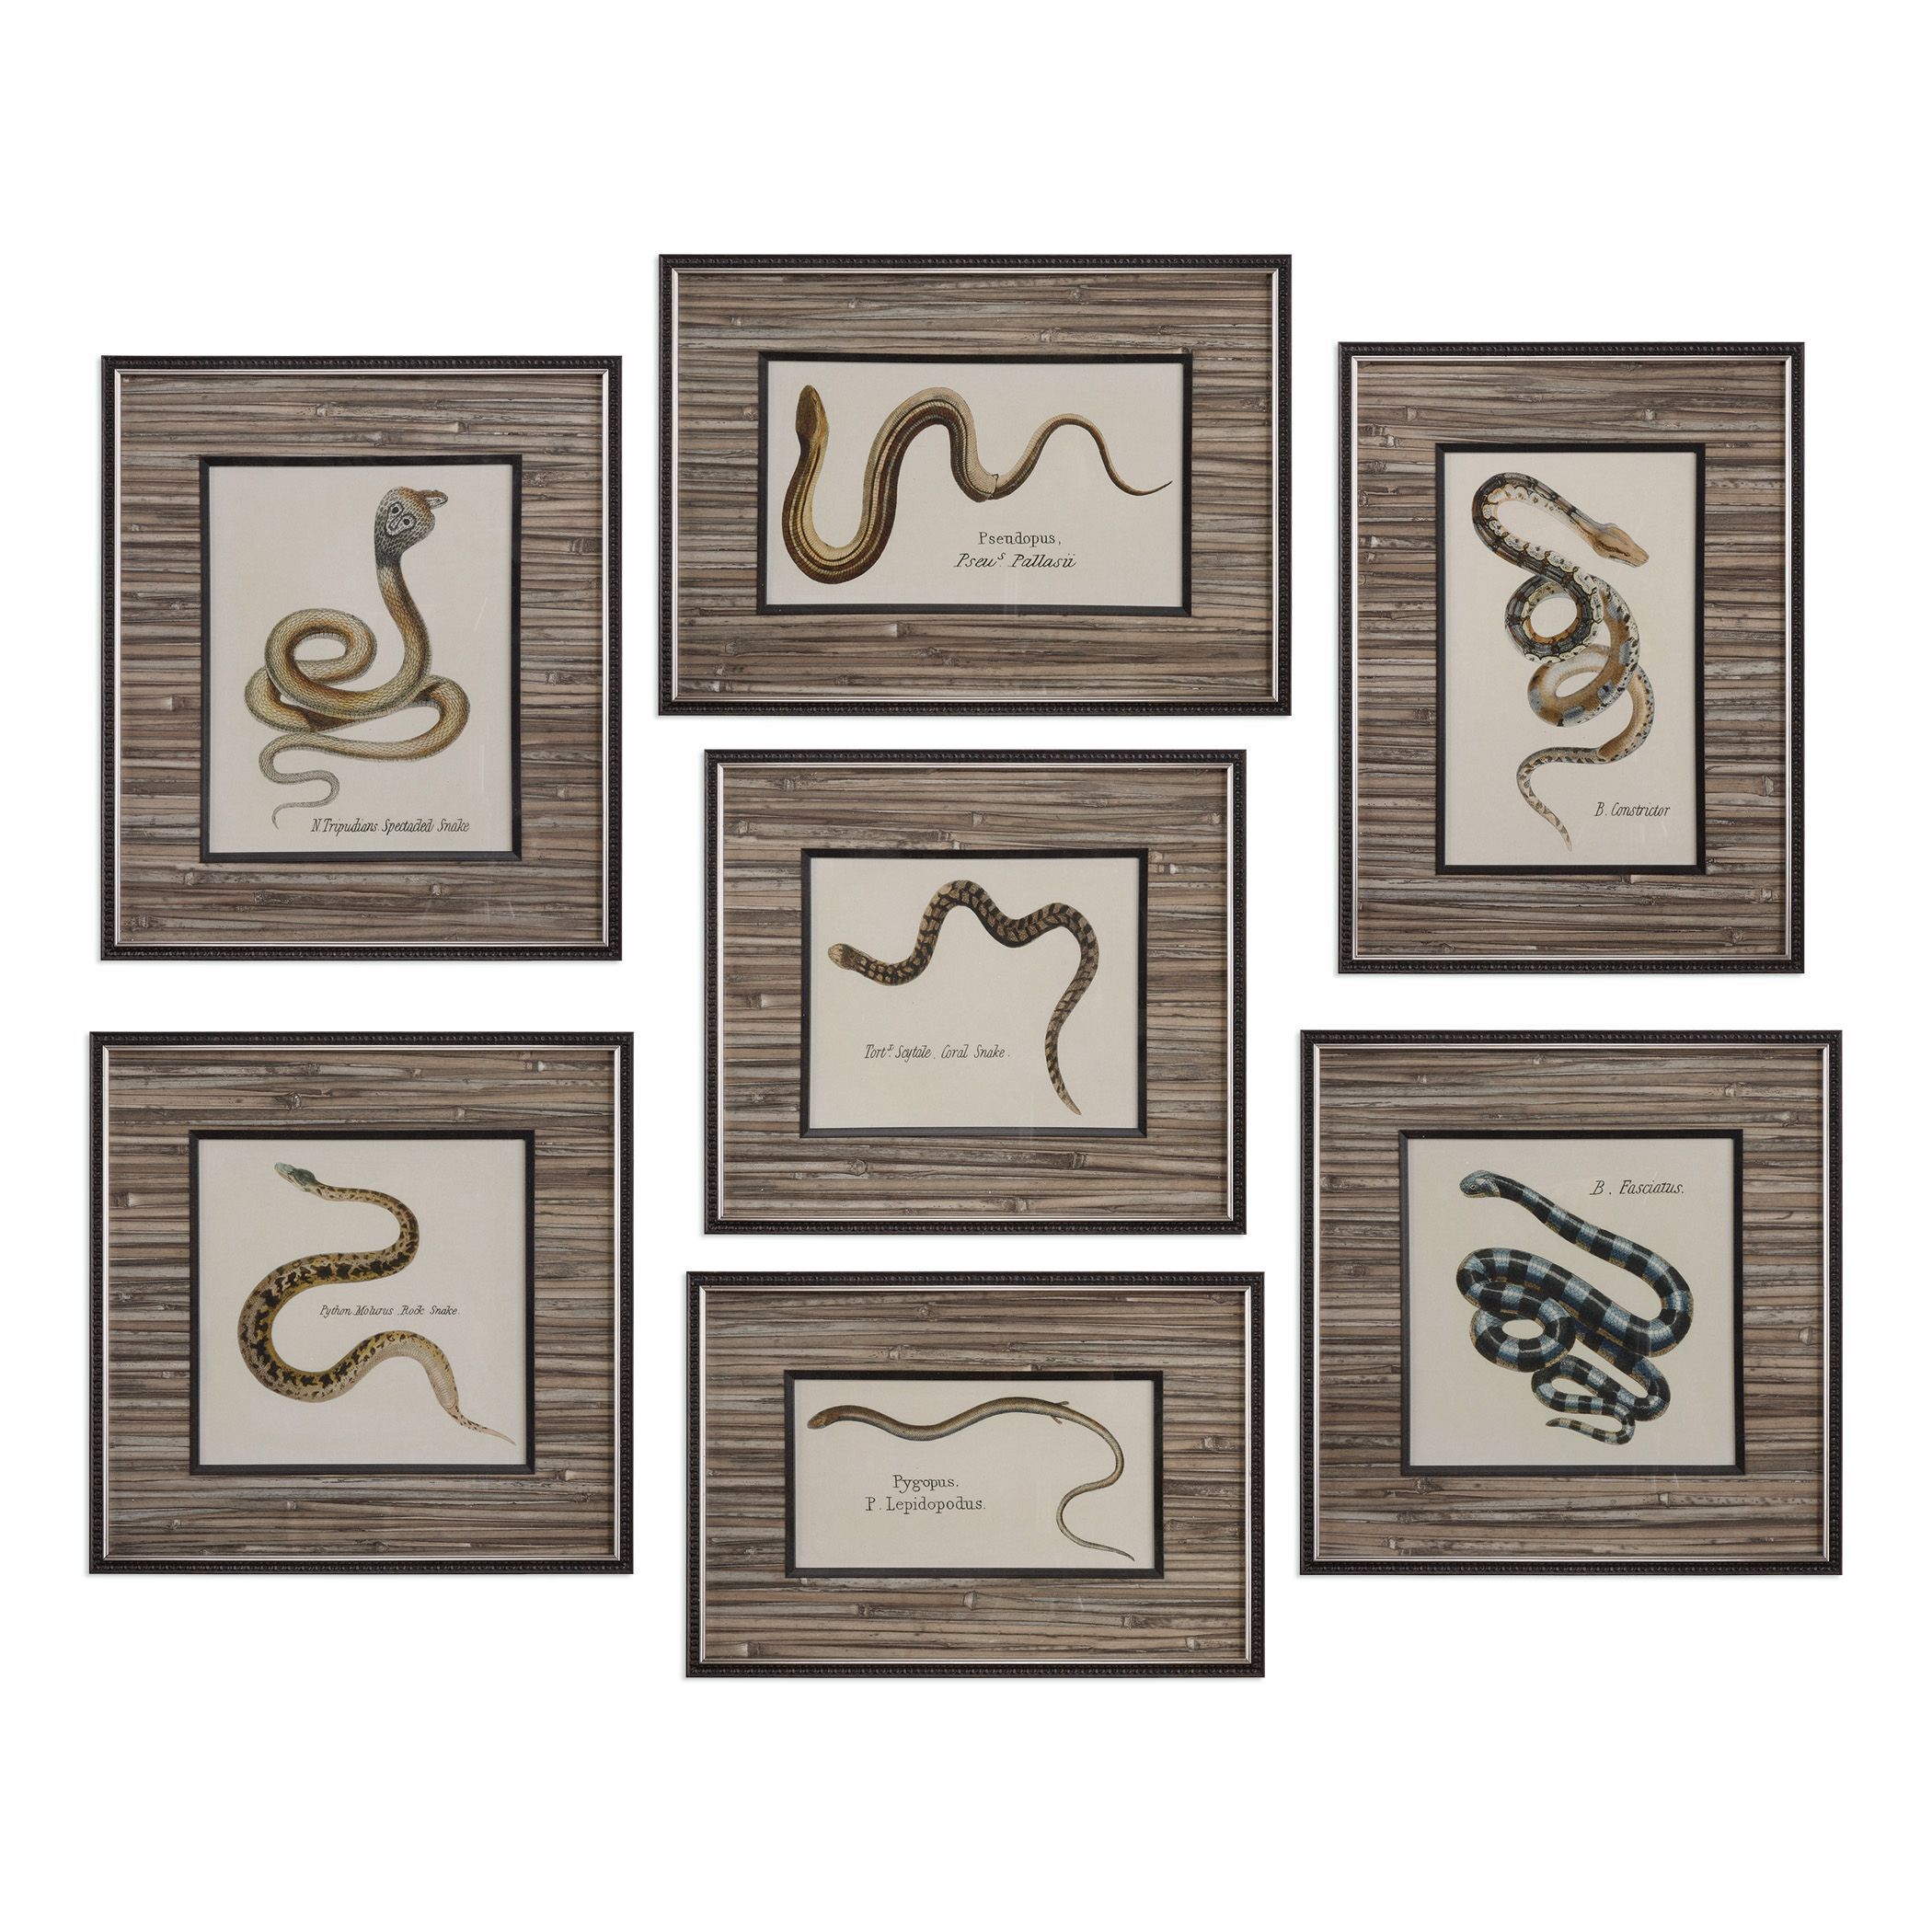 Seven-Piece Snakes Printed Wall Art Set  sc 1 st  Mathis Brothers & Wall Decor | Mathis Brothers Furniture